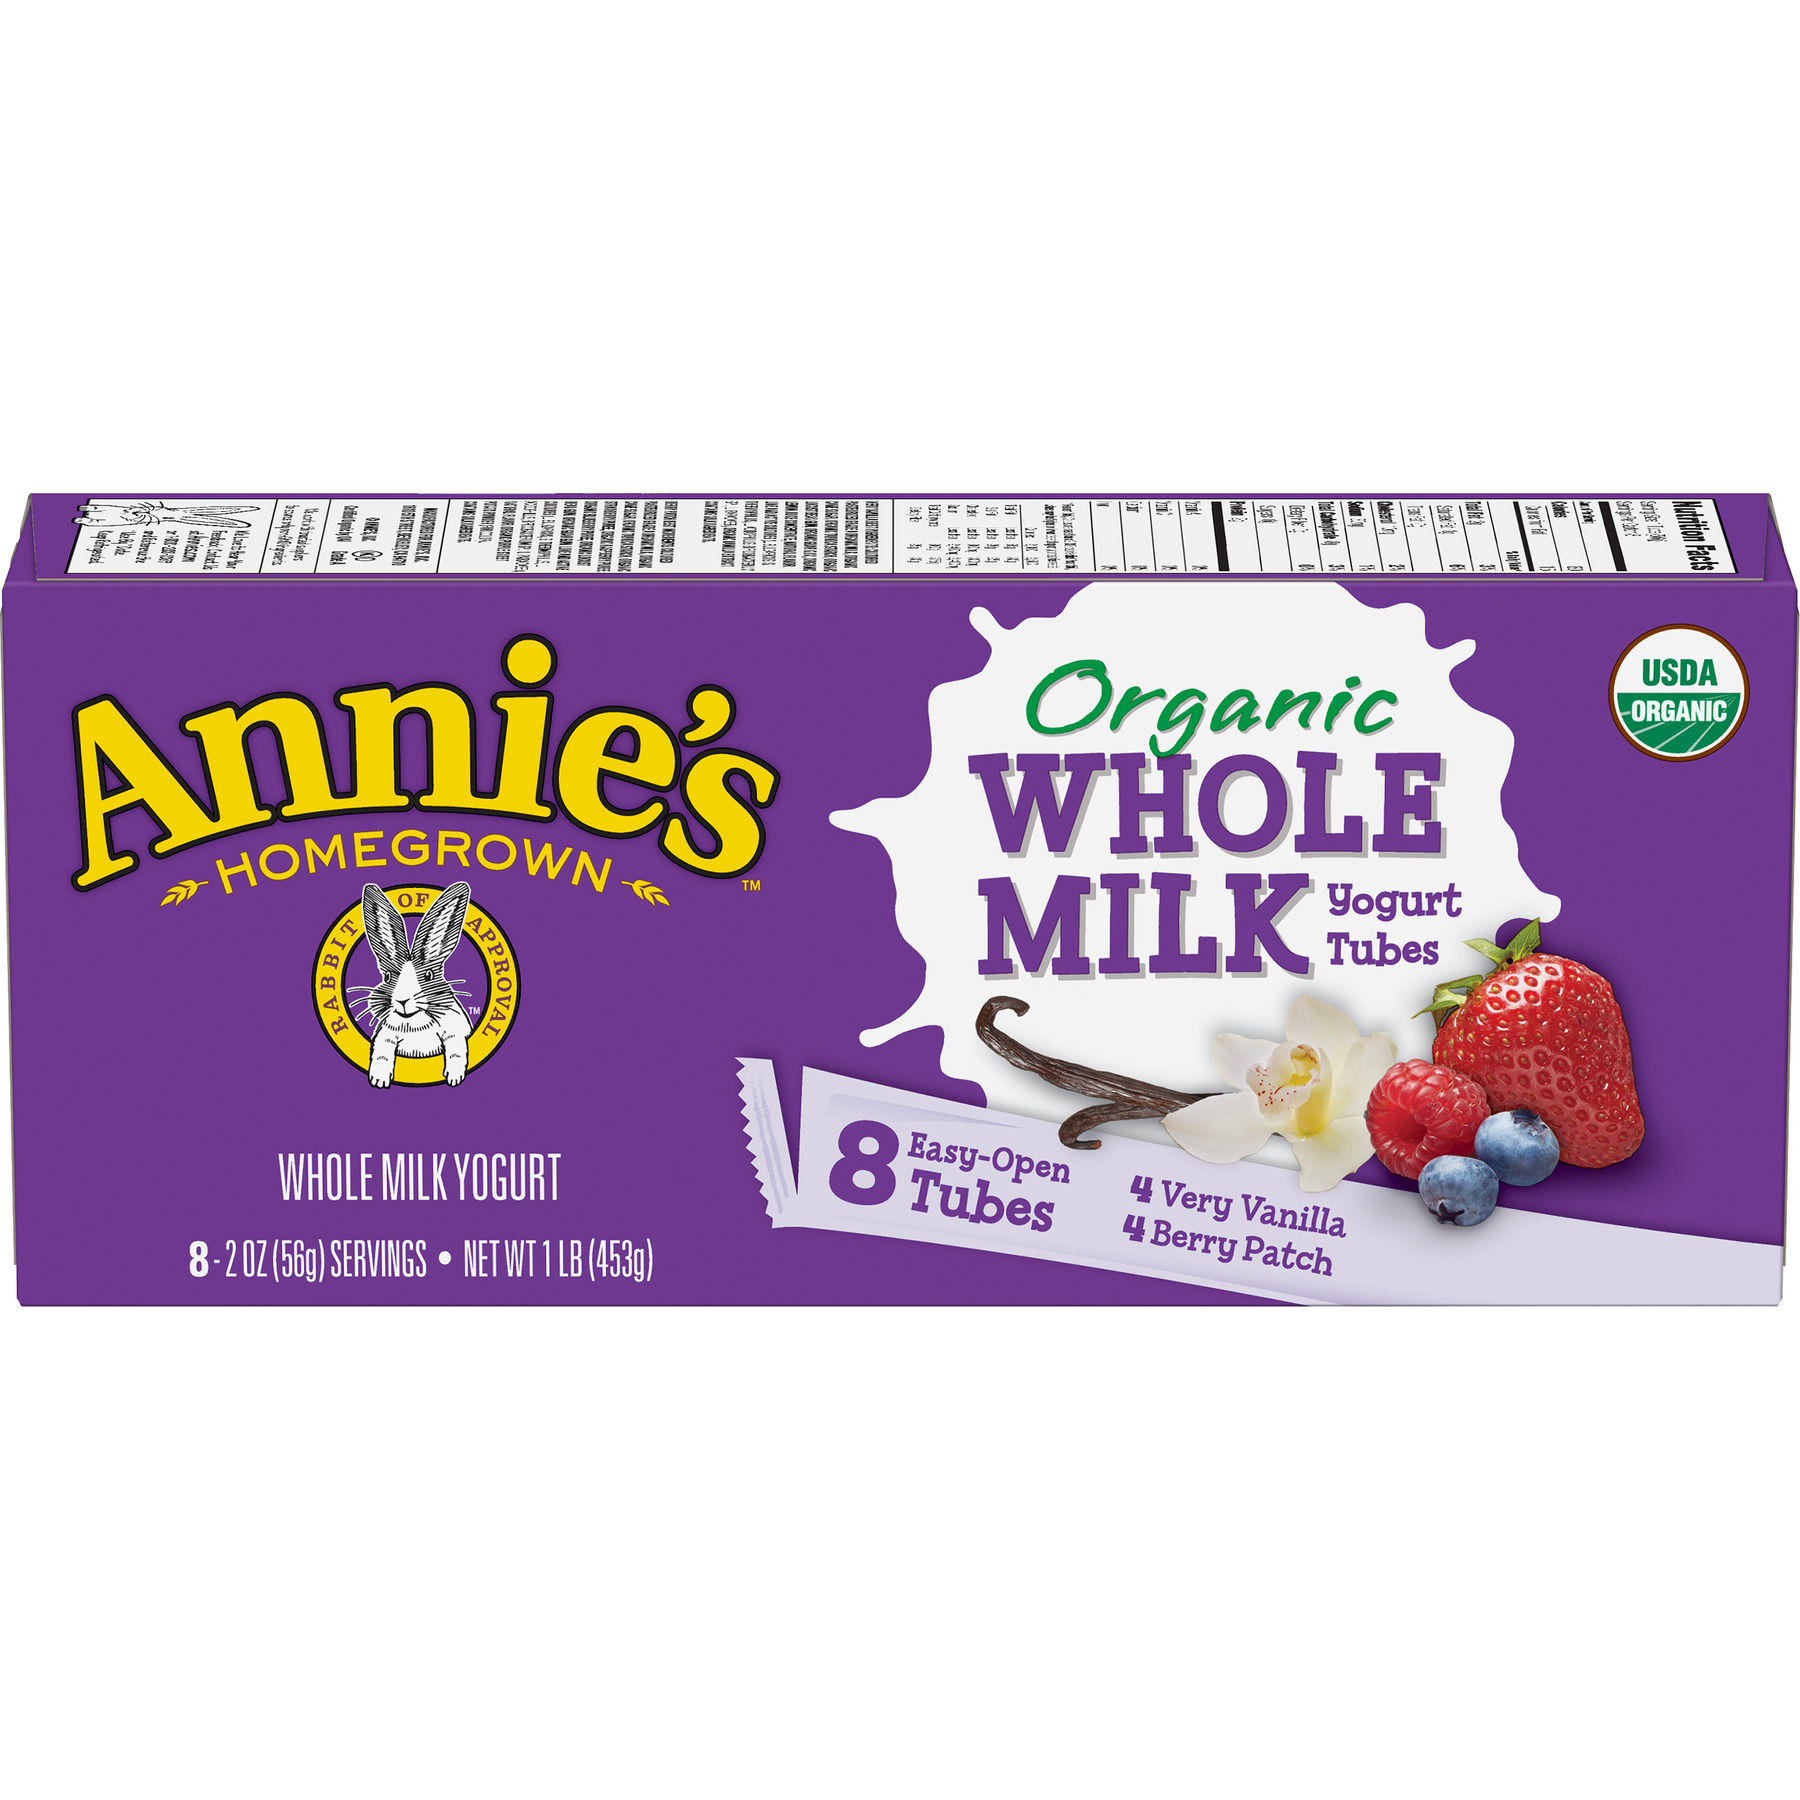 Annie's Organic Berry Patch/Very Vanilla Whole Milk Yogurt Tubes 16 oz